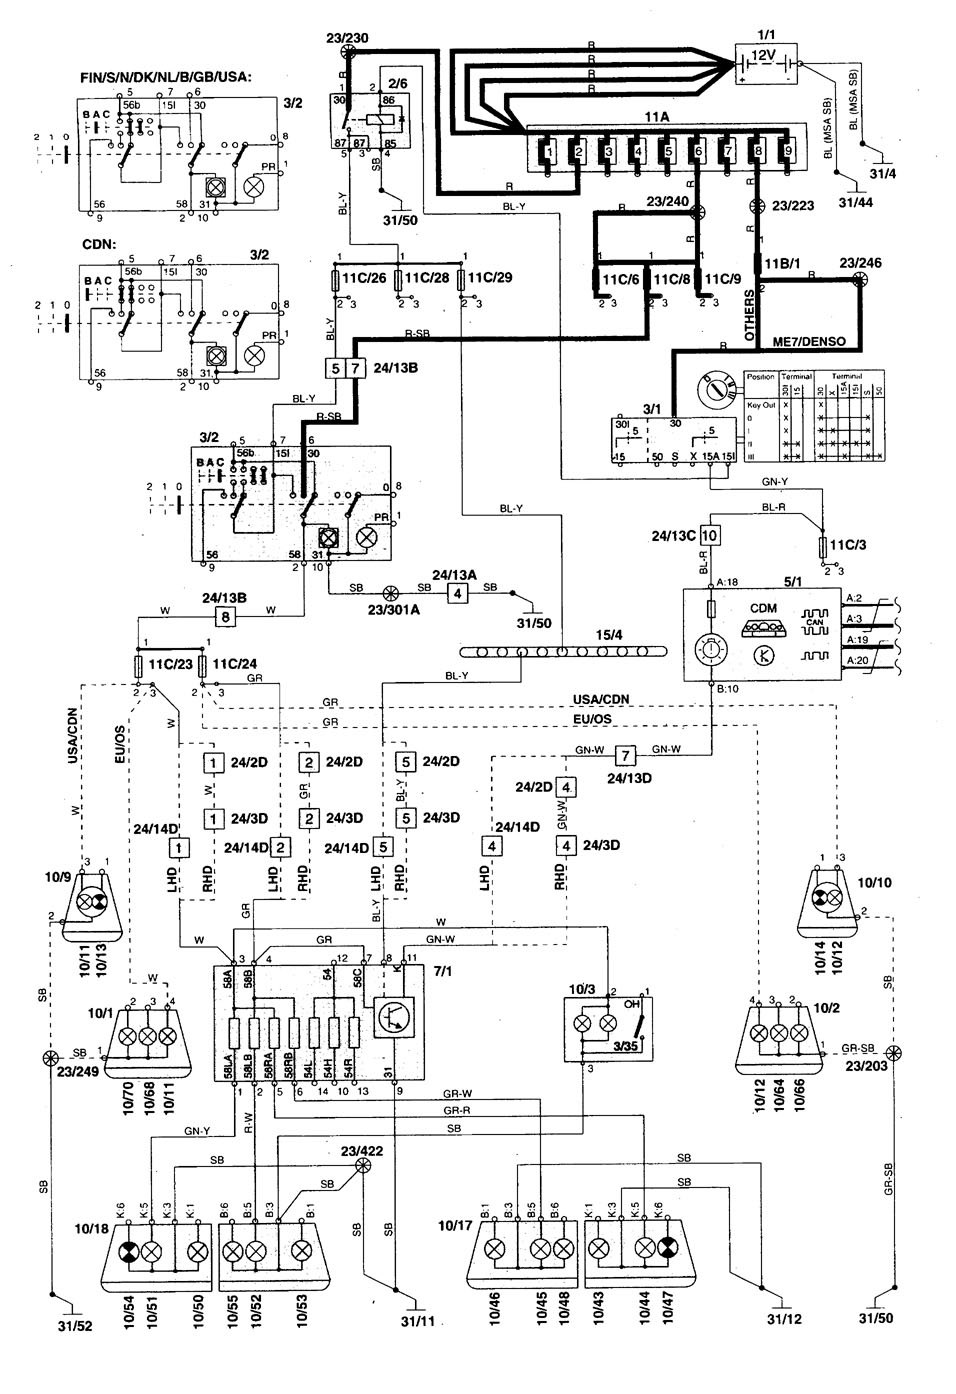 1998 volvo s70 wiring diagram